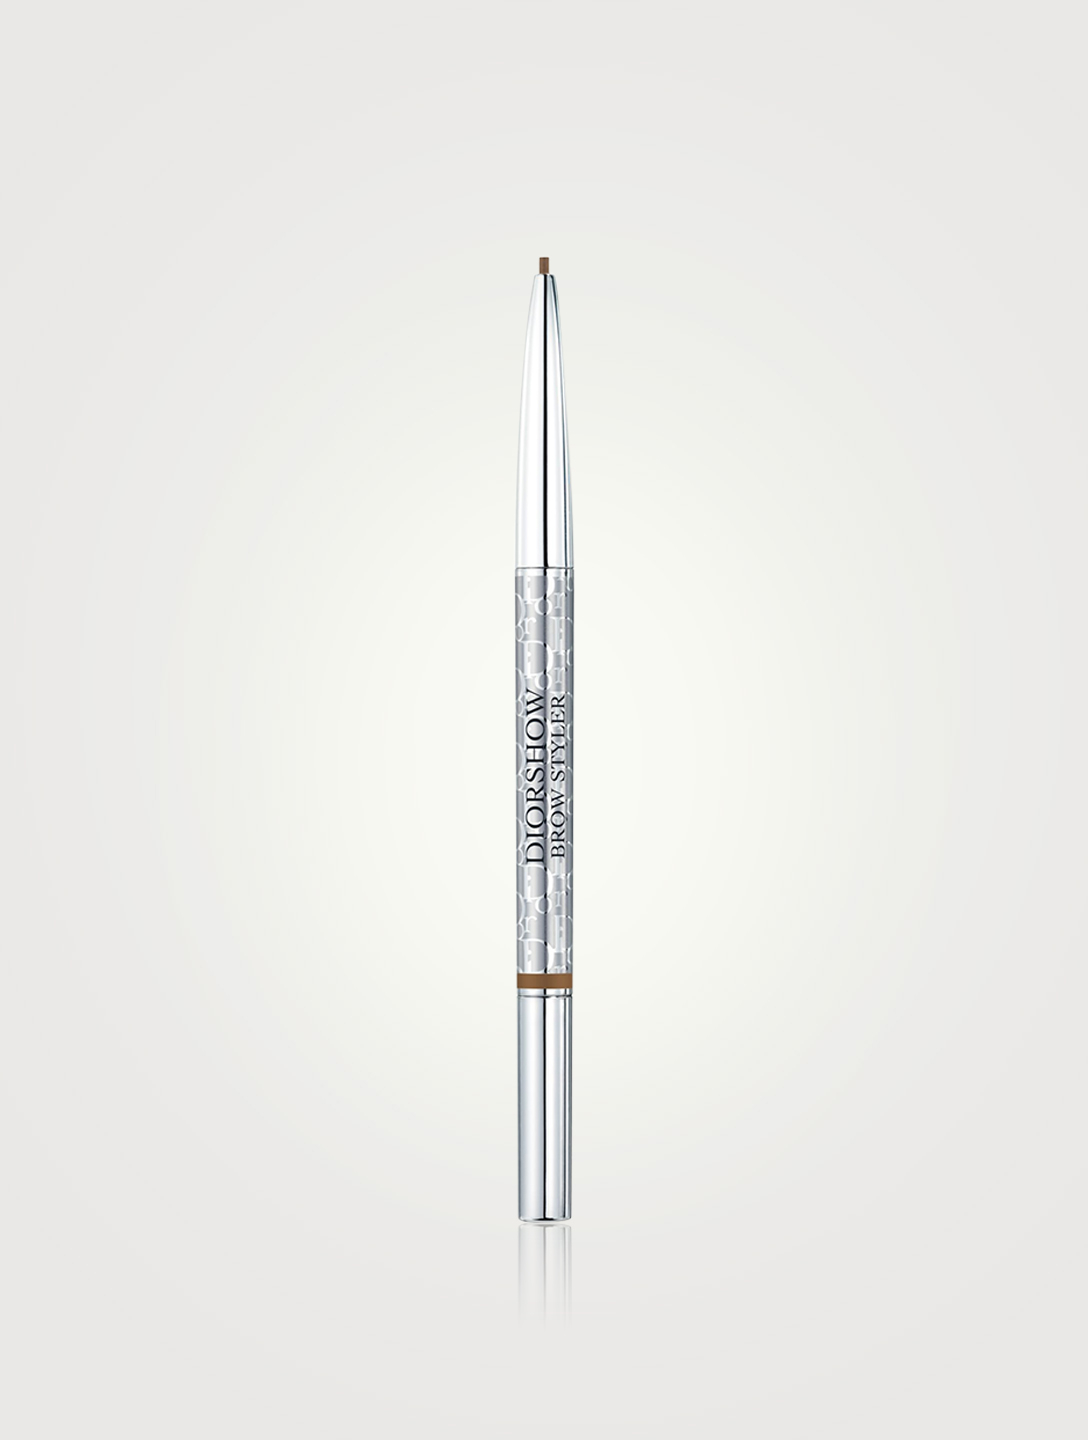 DIOR Diorshow Brow Styler Beauty Brown